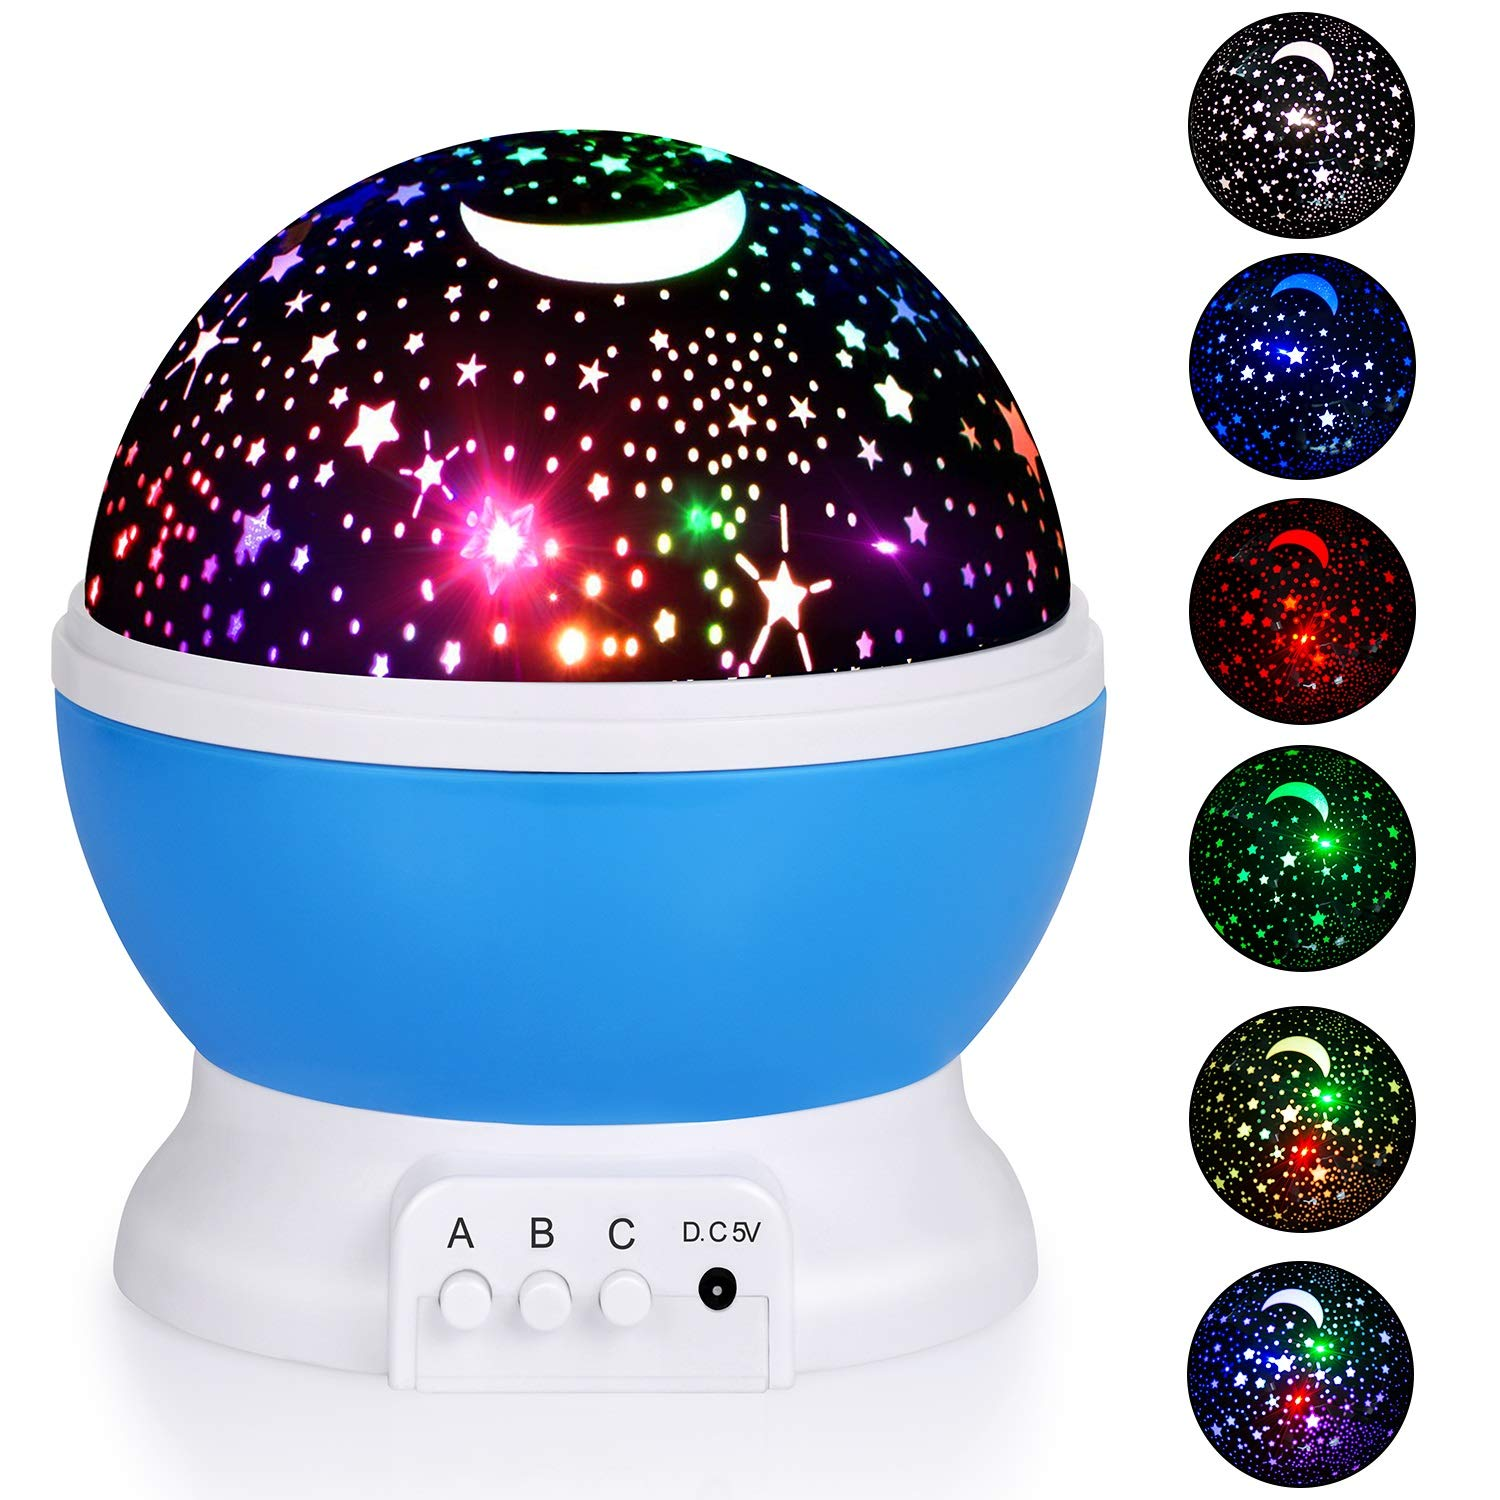 Night Lights for Kids, Baby Night Light, Starry Night Light Rotating Moon Star Projector, Romantic Night Lighting Lamp, 4 LED Bulbs 8 Modes with USB Cable, Bedside Lamp Best for Bedroom Nursery (Blue) Cynkie